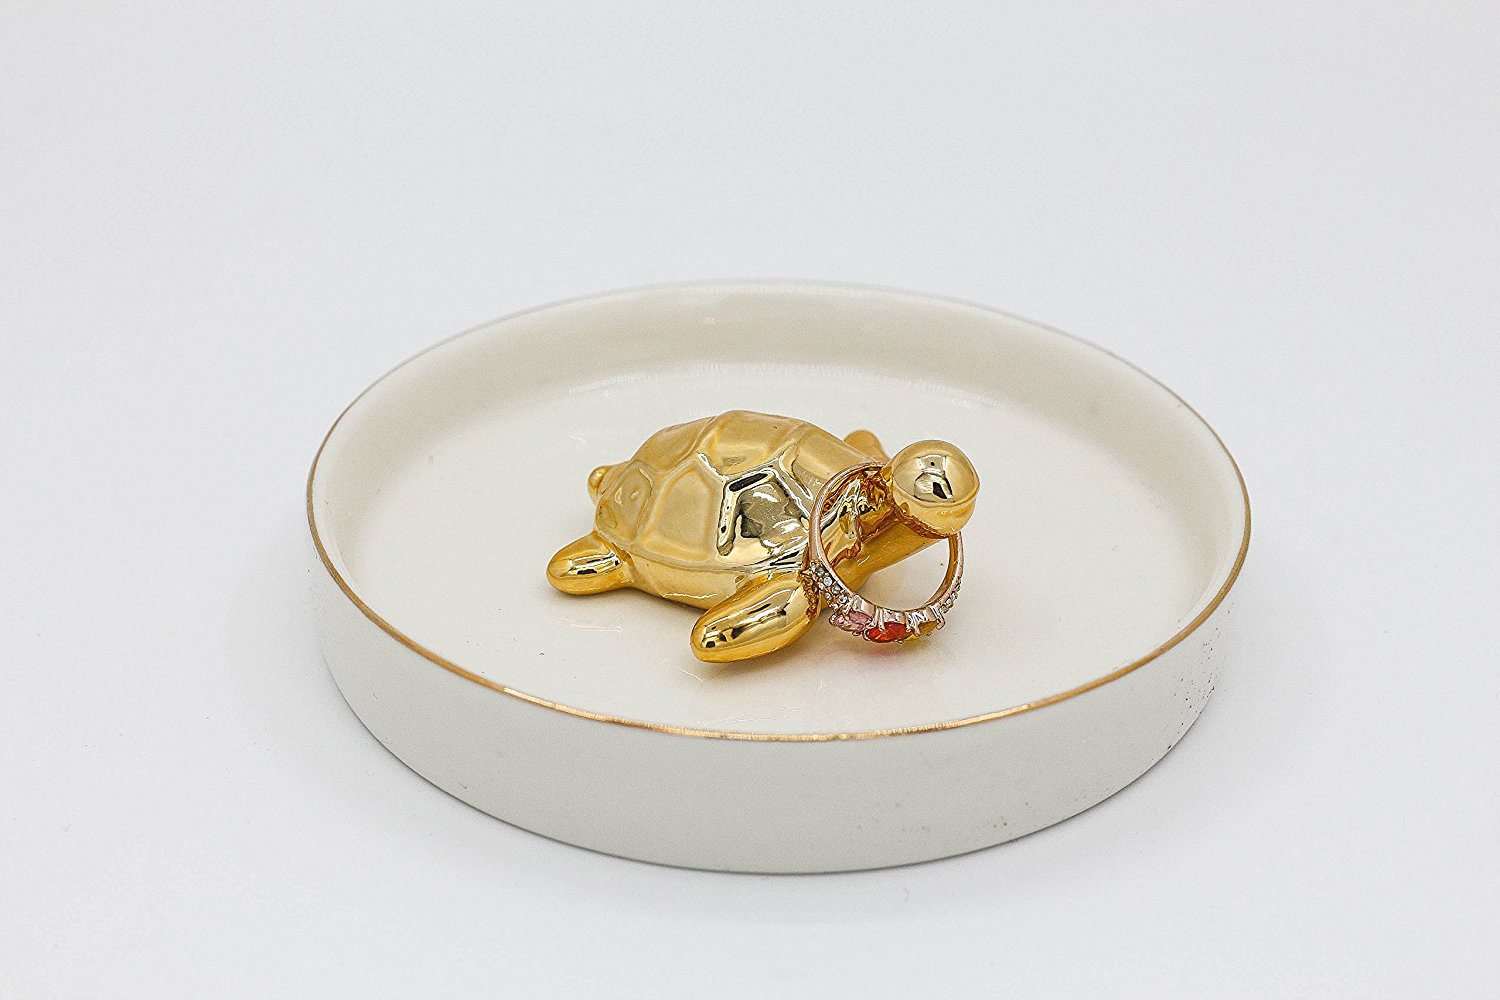 Cute Round Ring Dish Tray with Golden Turtle